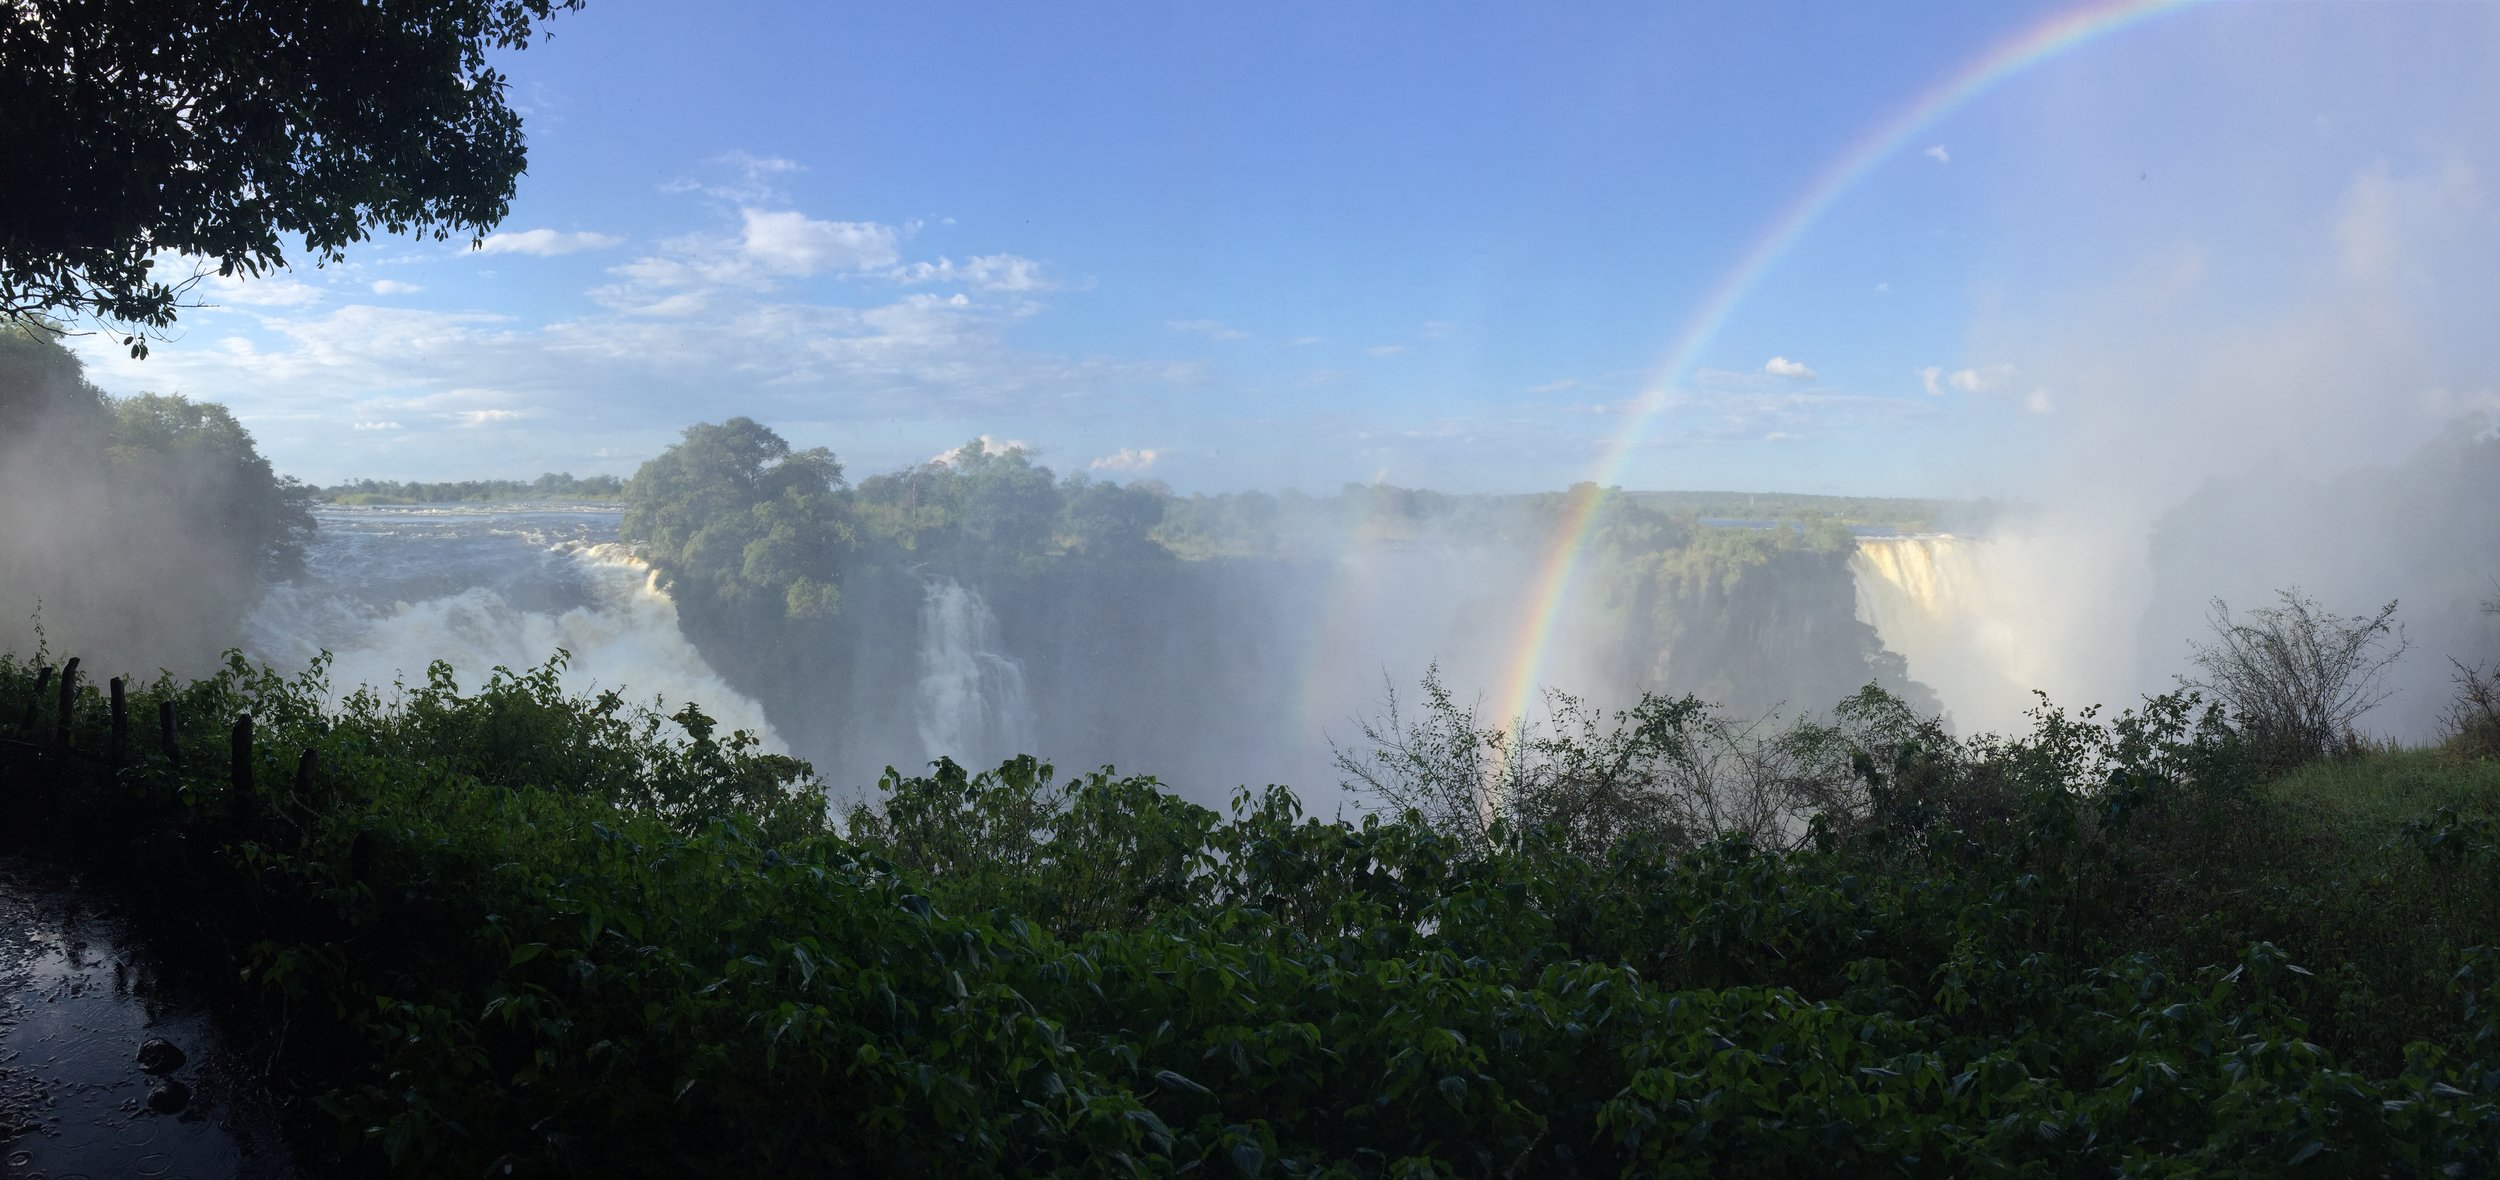 All of Victoria Falls looks like something you would find animated into a Disney Movie.